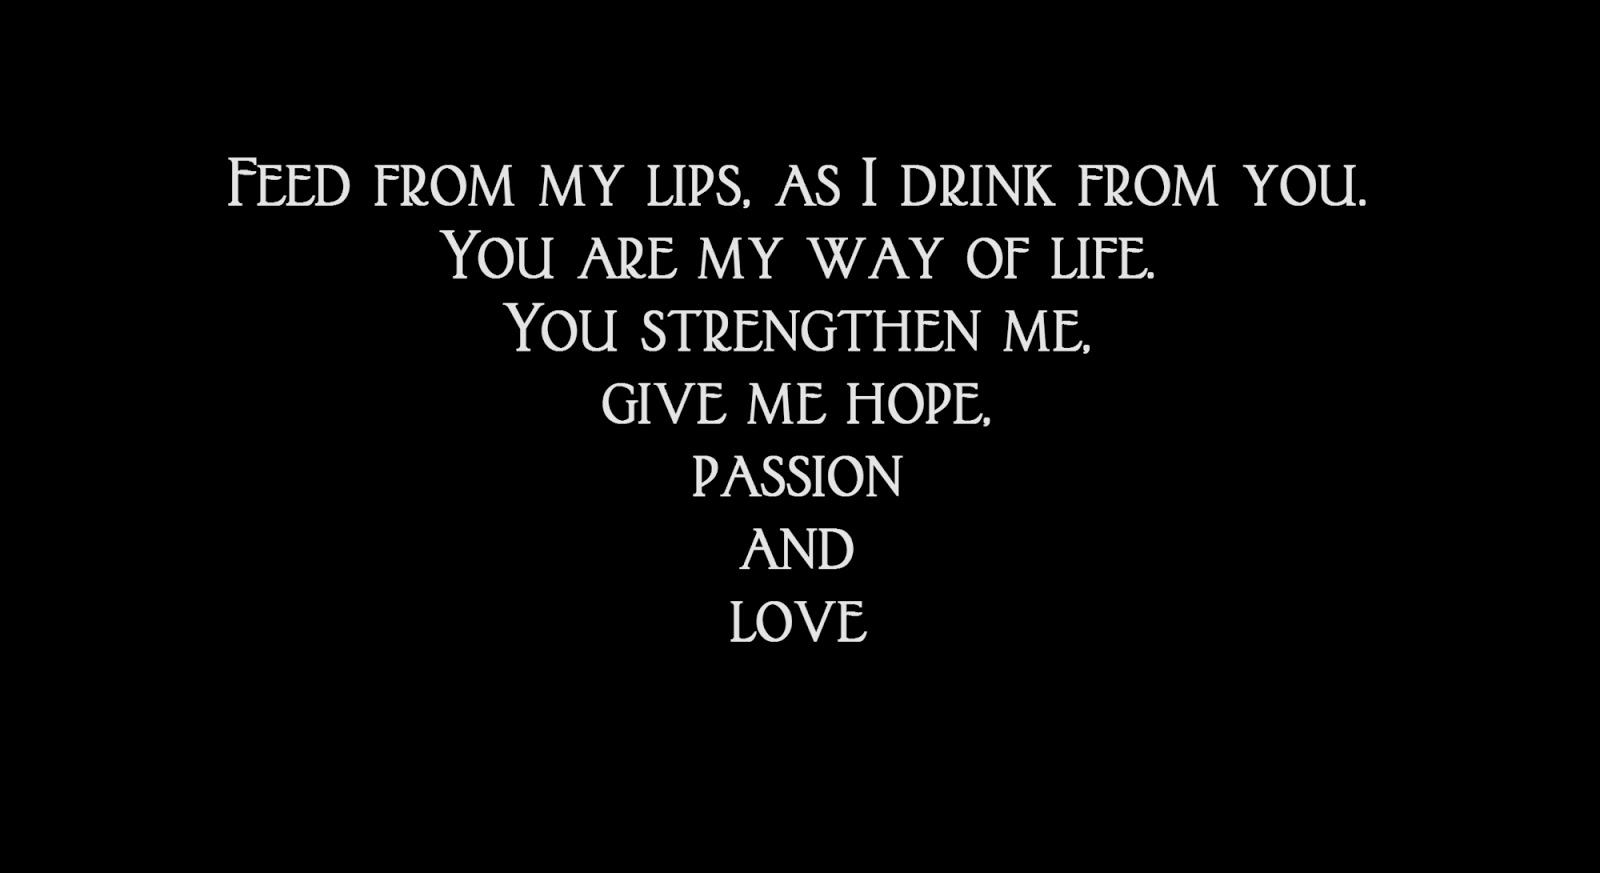 Feed from my lips, as I drink from you.  You are my way of life. You strengthen me, give me hope, passion and love.